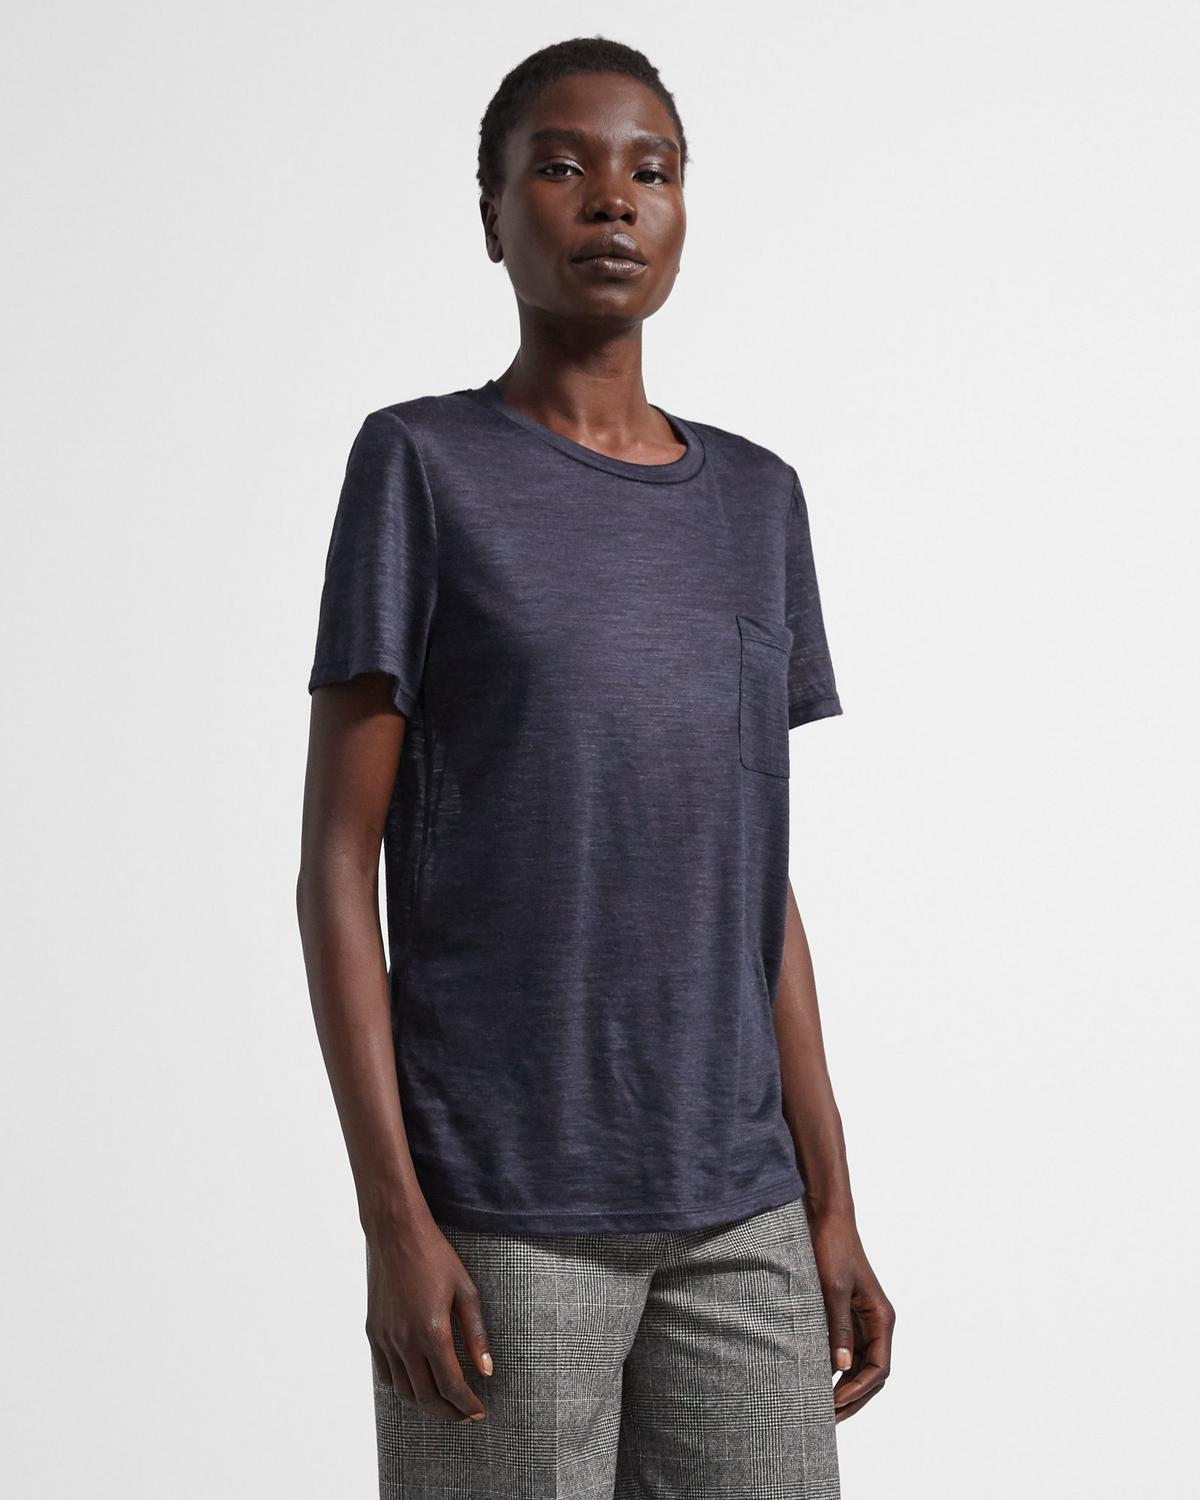 Easy Pocket Tee in Wool Jersey 0 - click to view larger image